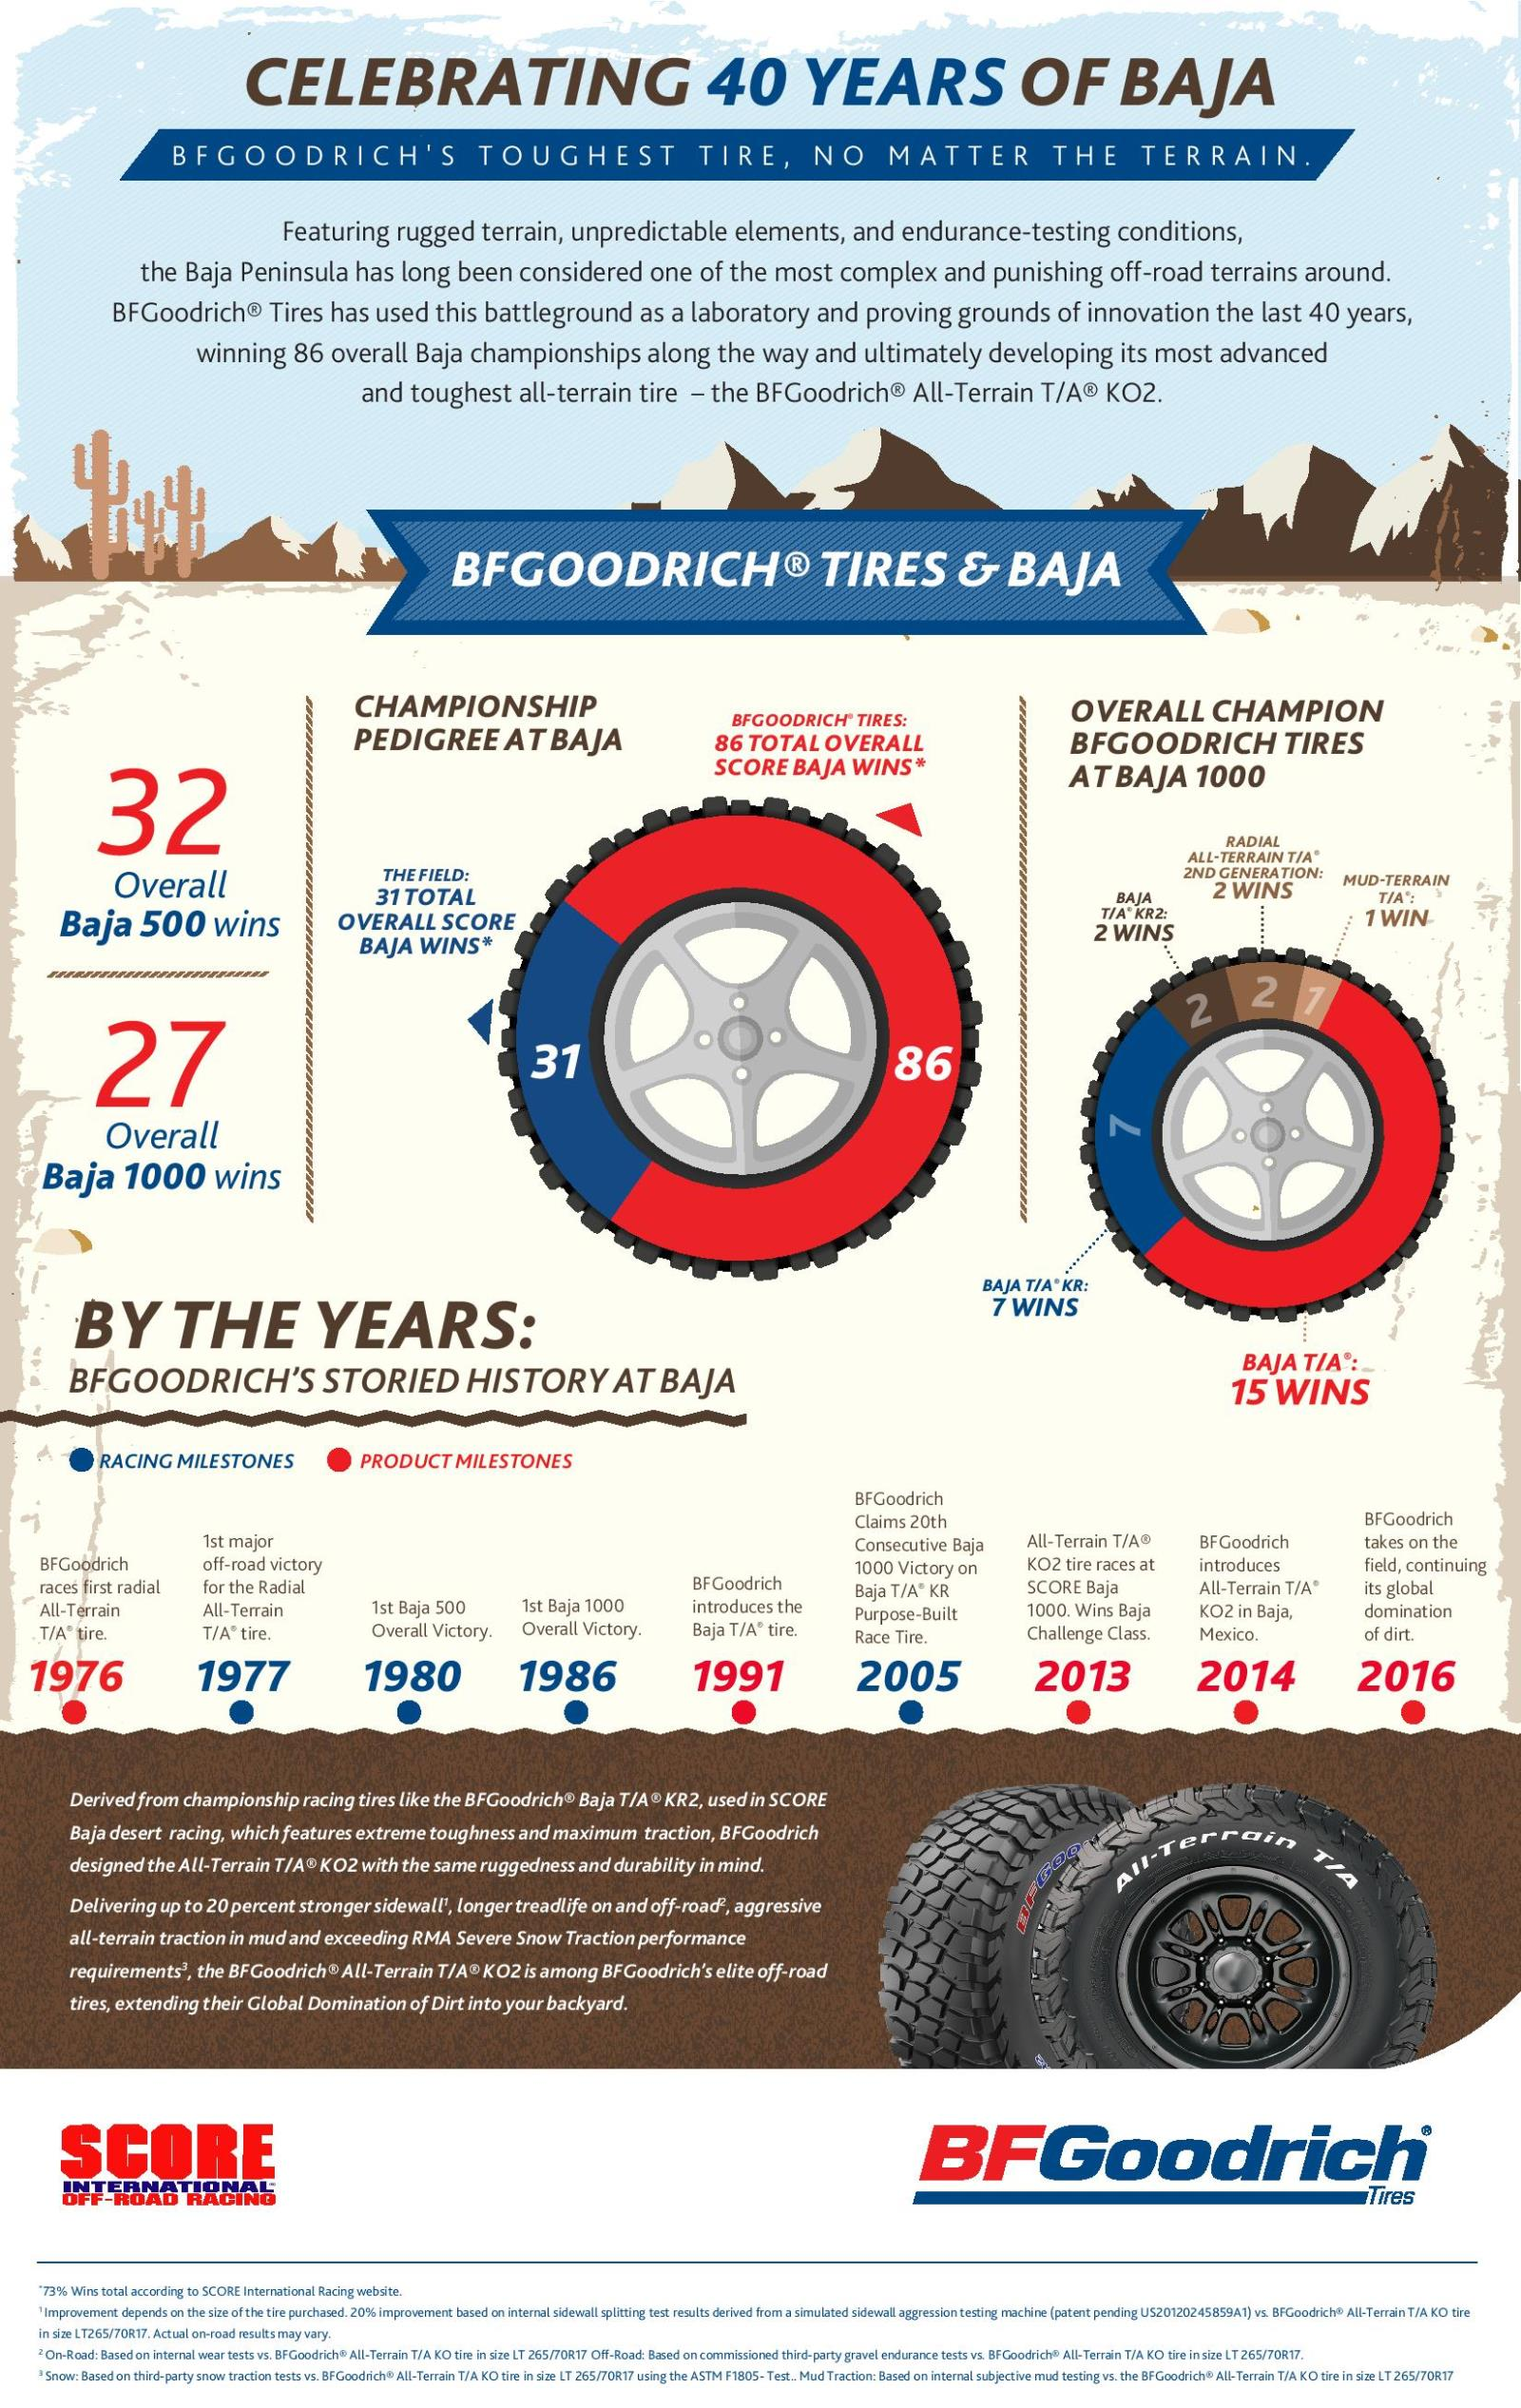 BFGOODRICH_and_Baja_40_Years_Graphic.jpg